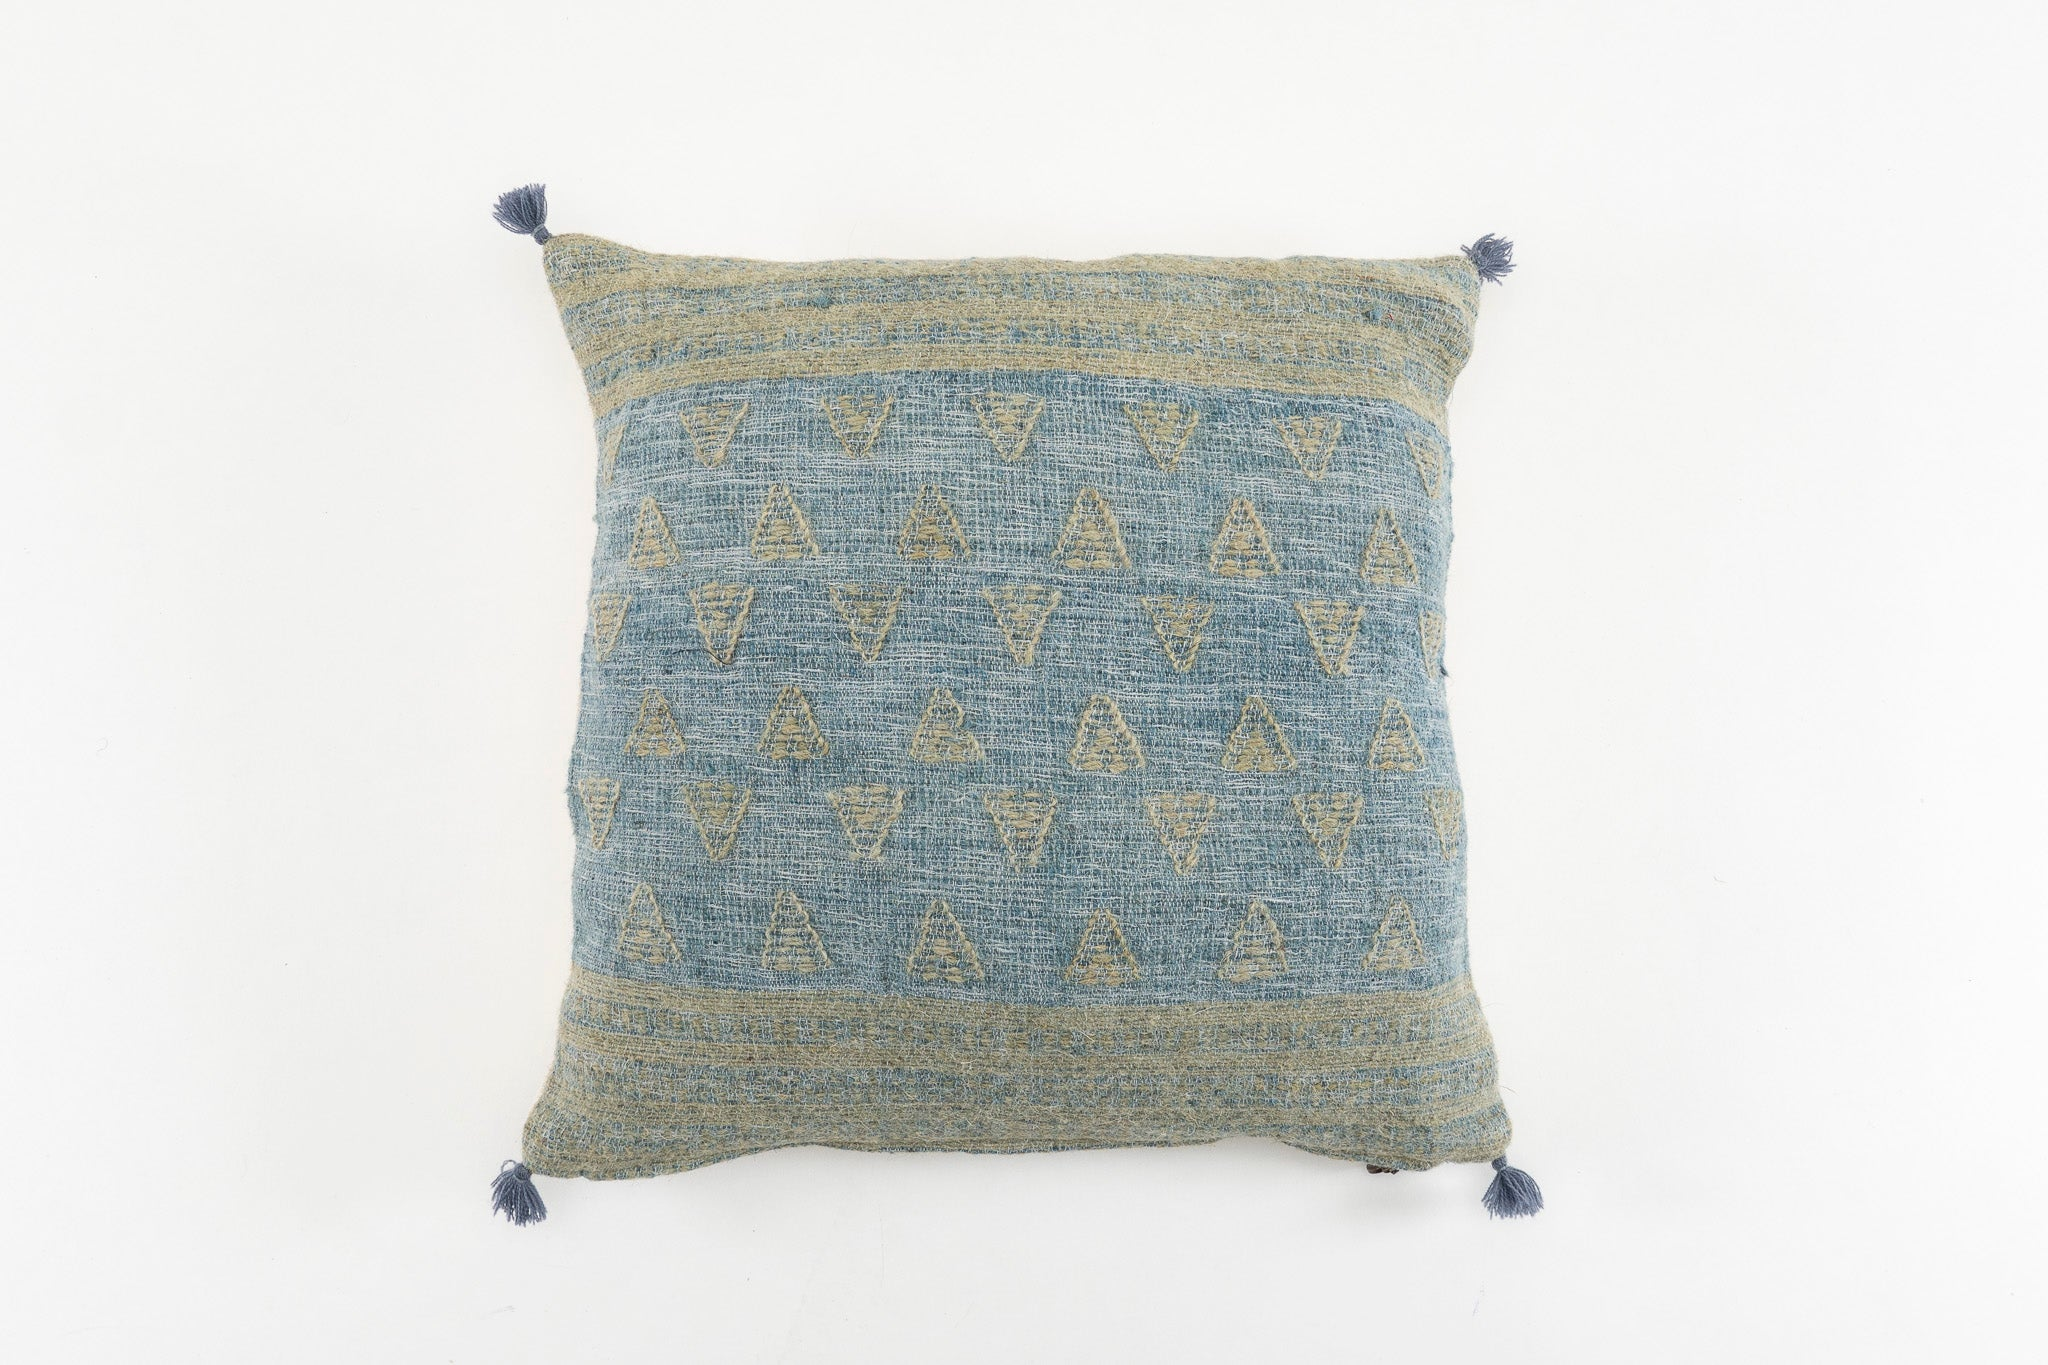 Pillow: Handwoven wool, antique Hungarian hemp